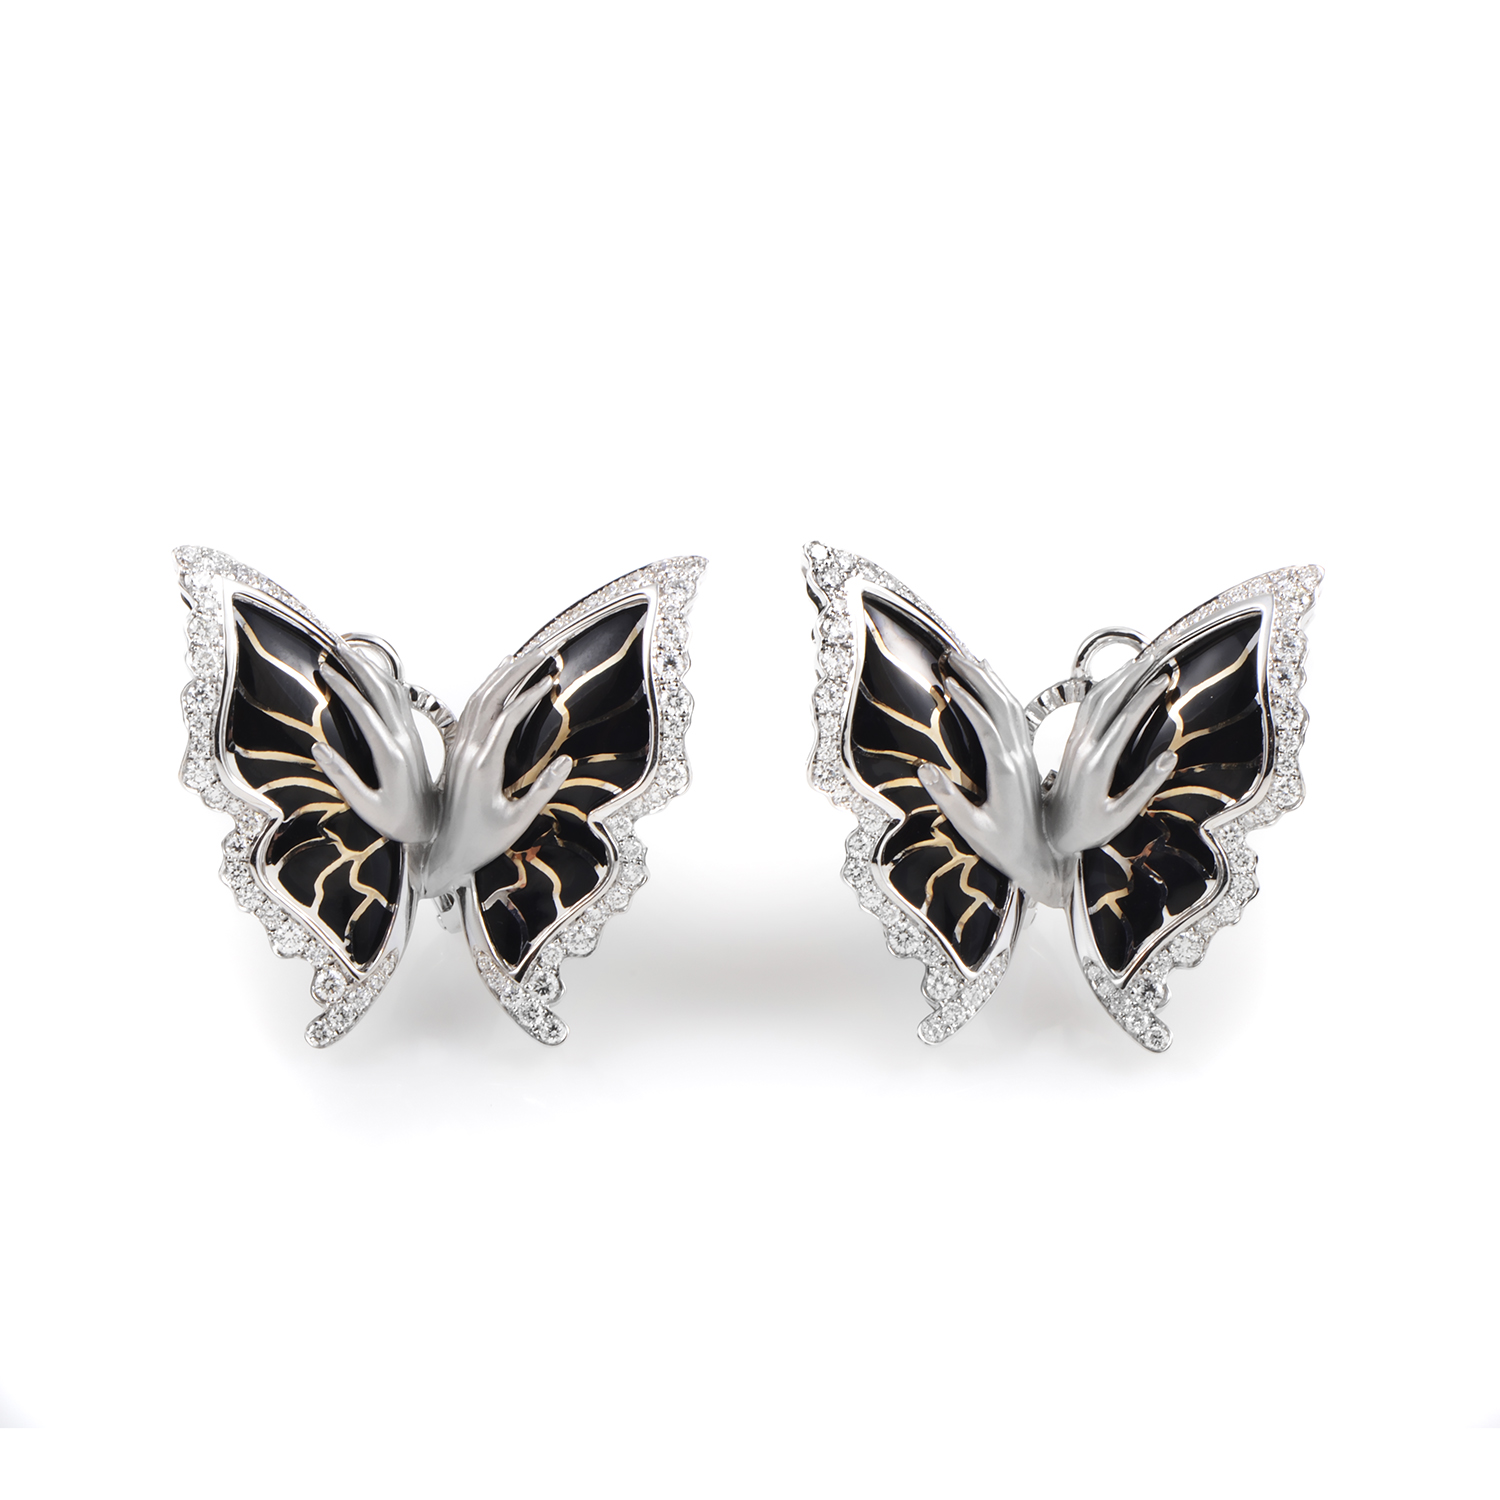 Versailles Women's Large Enameled White Gold Diamond Mariposa Earrings